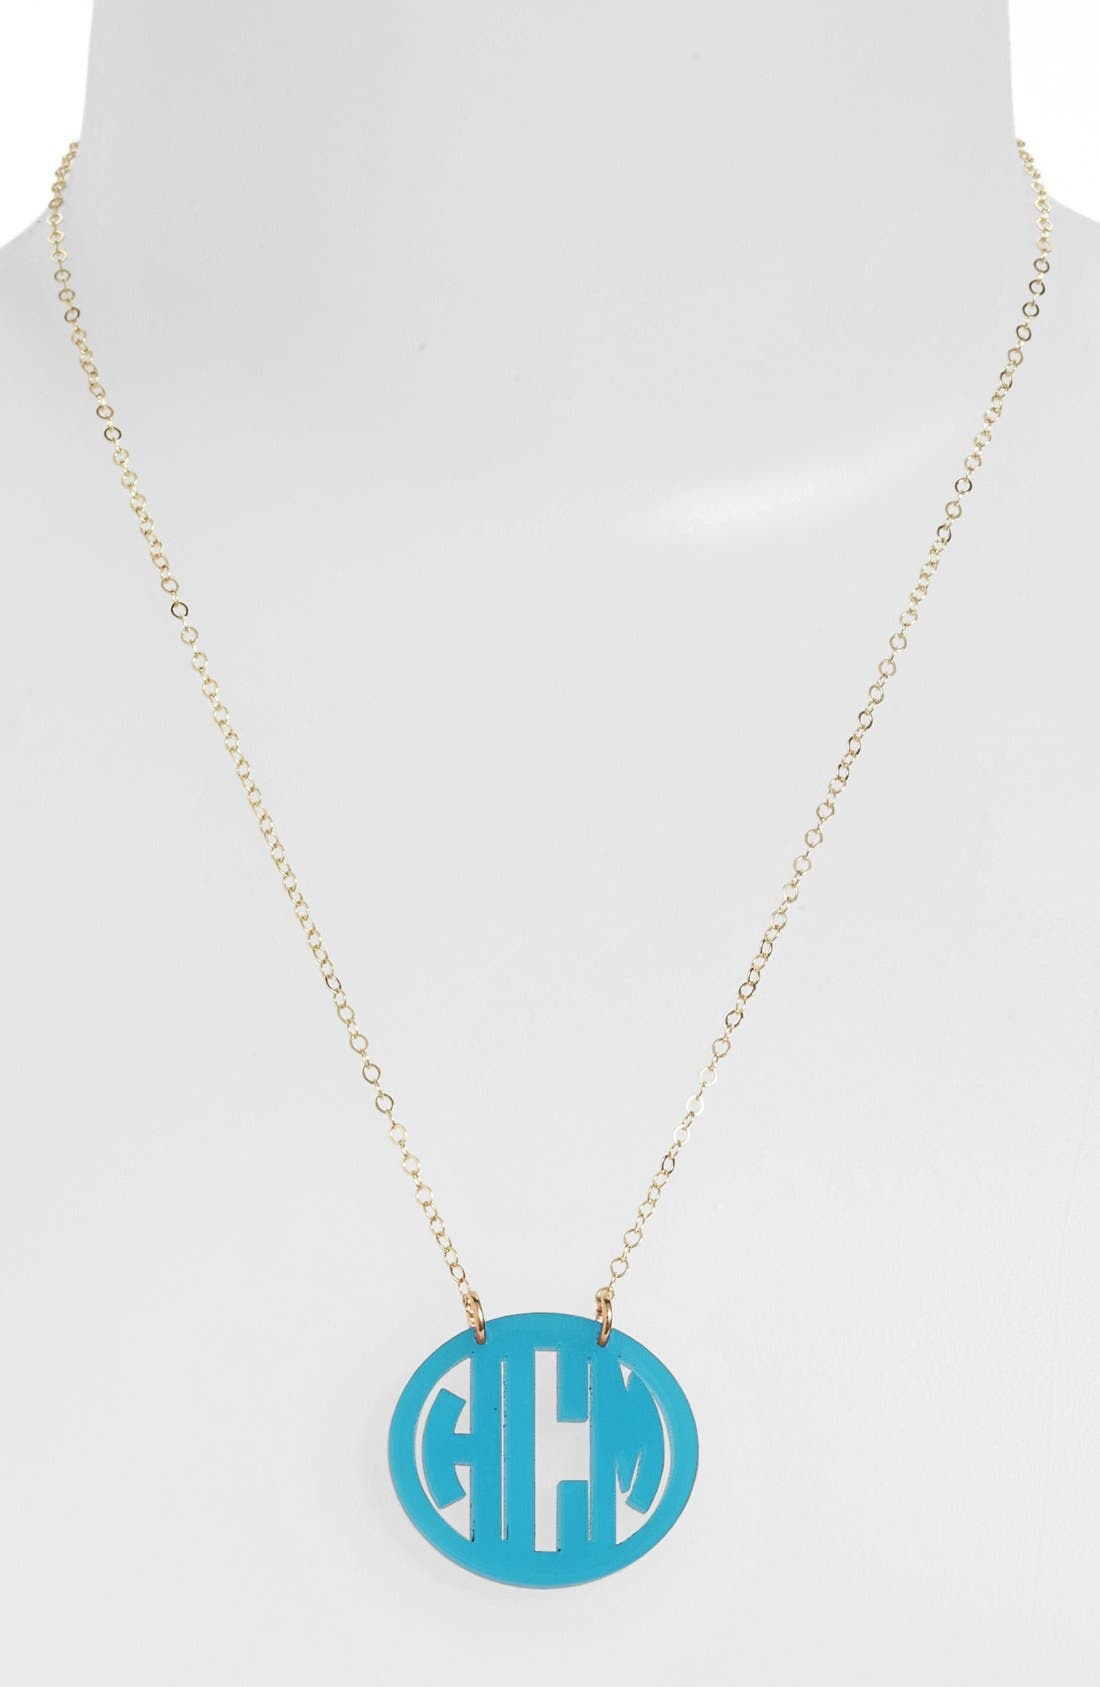 MOON AND LOLA, Small Personalized Monogram Pendant Necklace, Main thumbnail 1, color, TURQUOISE/ GOLD